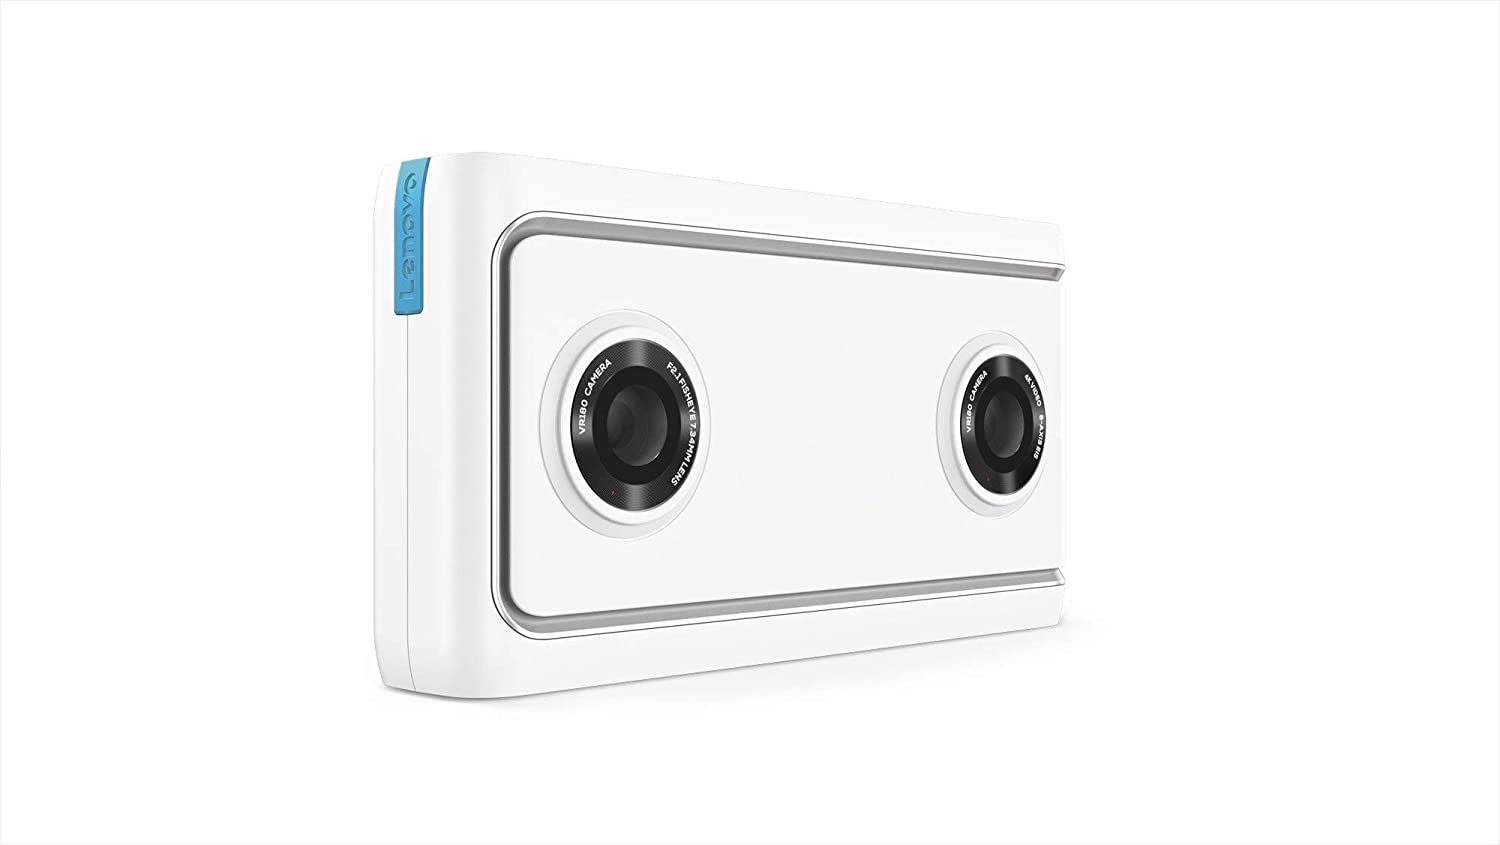 Lenovo Mirage Camera with Daydream, VR-Ready Photo and Video Camera, Integration with YouTube and Google Photos, Smartphone Compatibility, Moonlight White (Renewed)